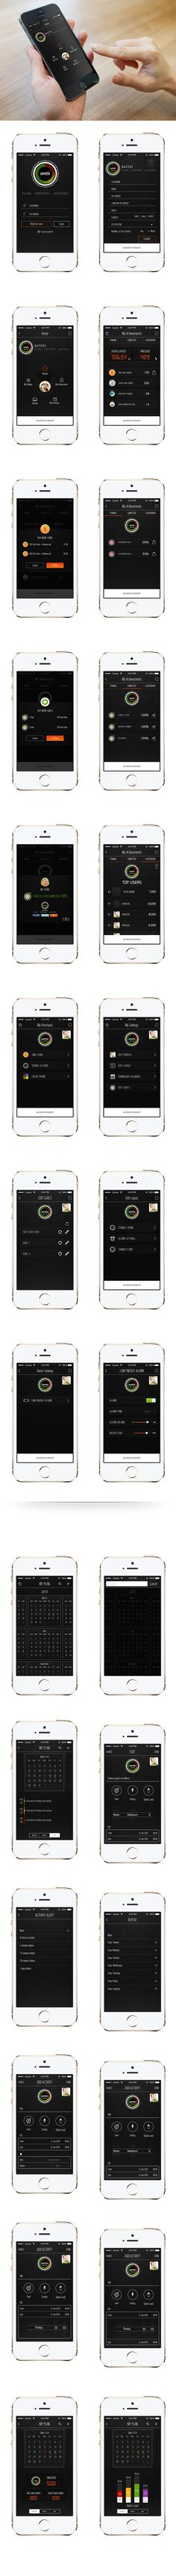 Bateri is a productivity app for iOS devices on Behance